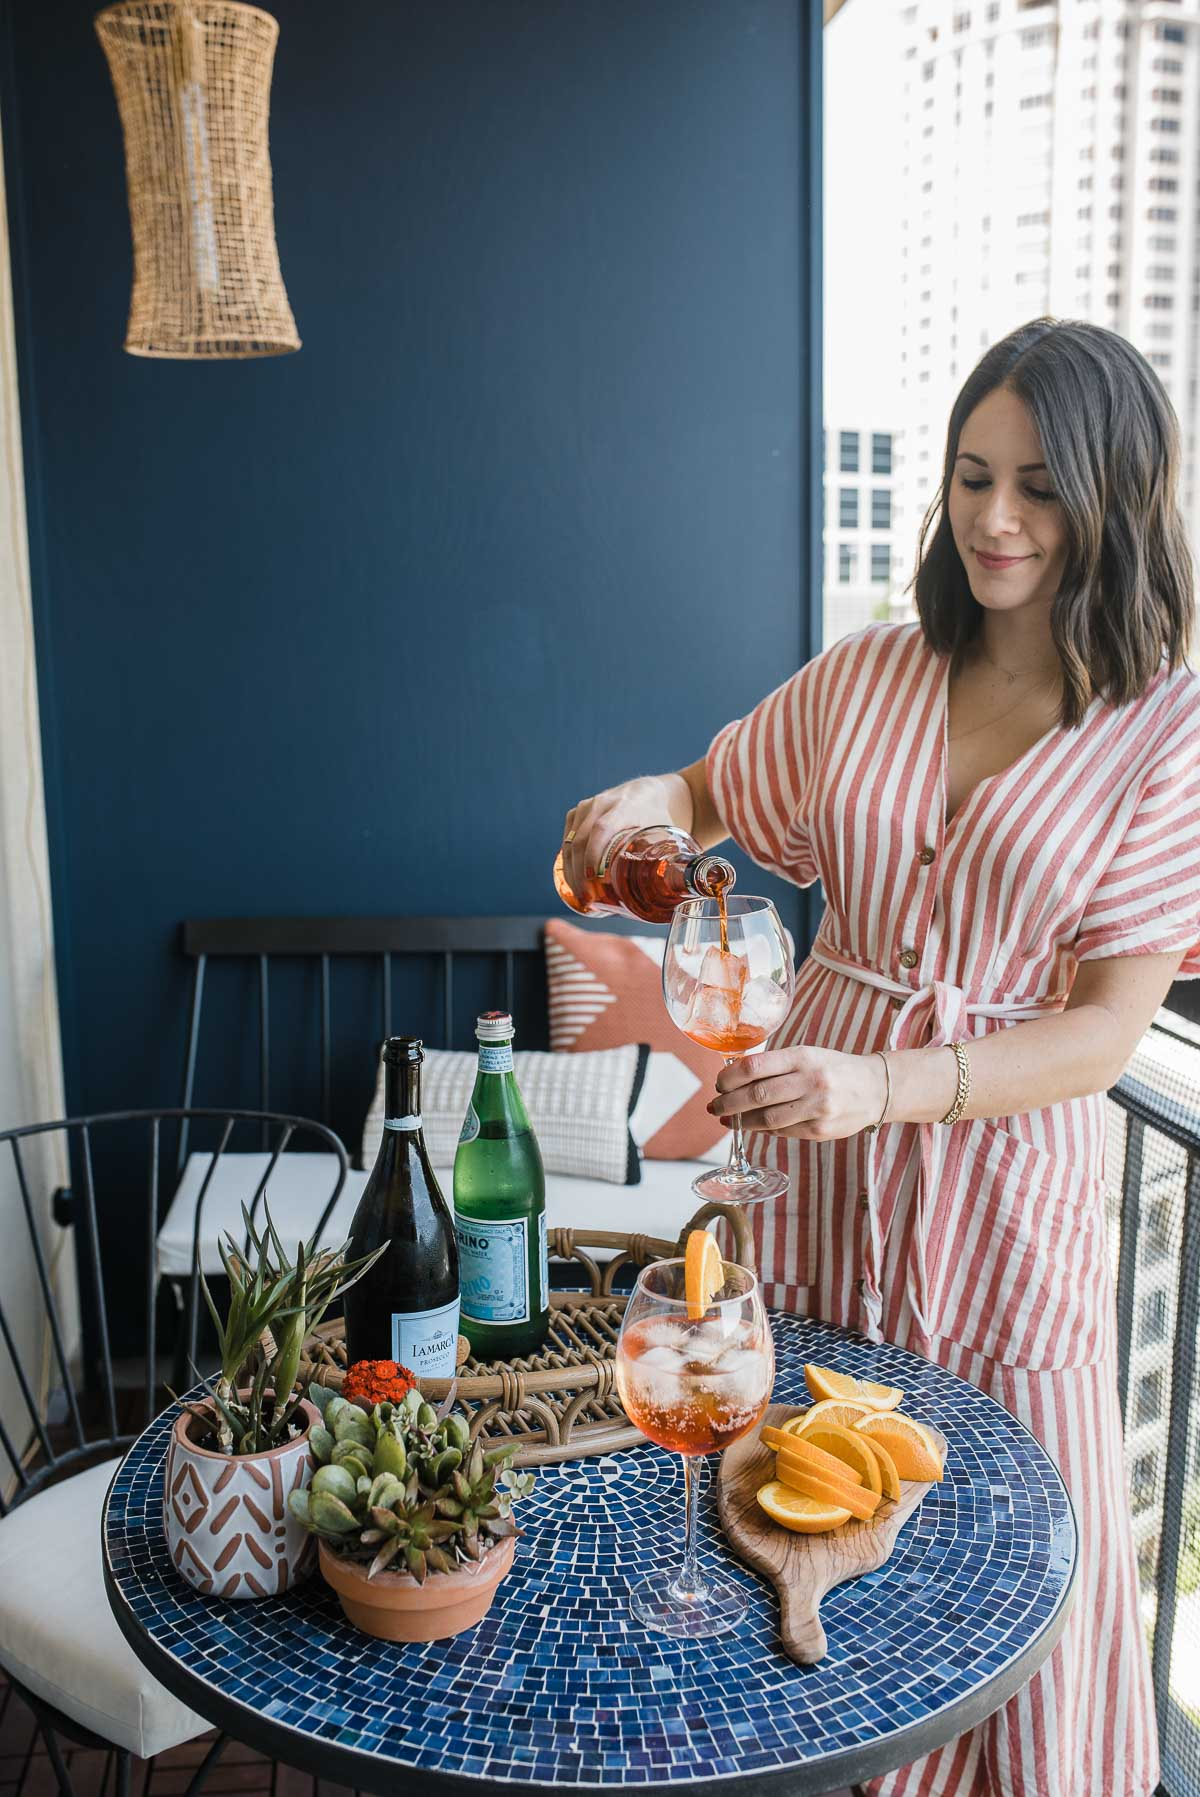 Jessica Camerata is sharing an Aperol Spritz Recipe